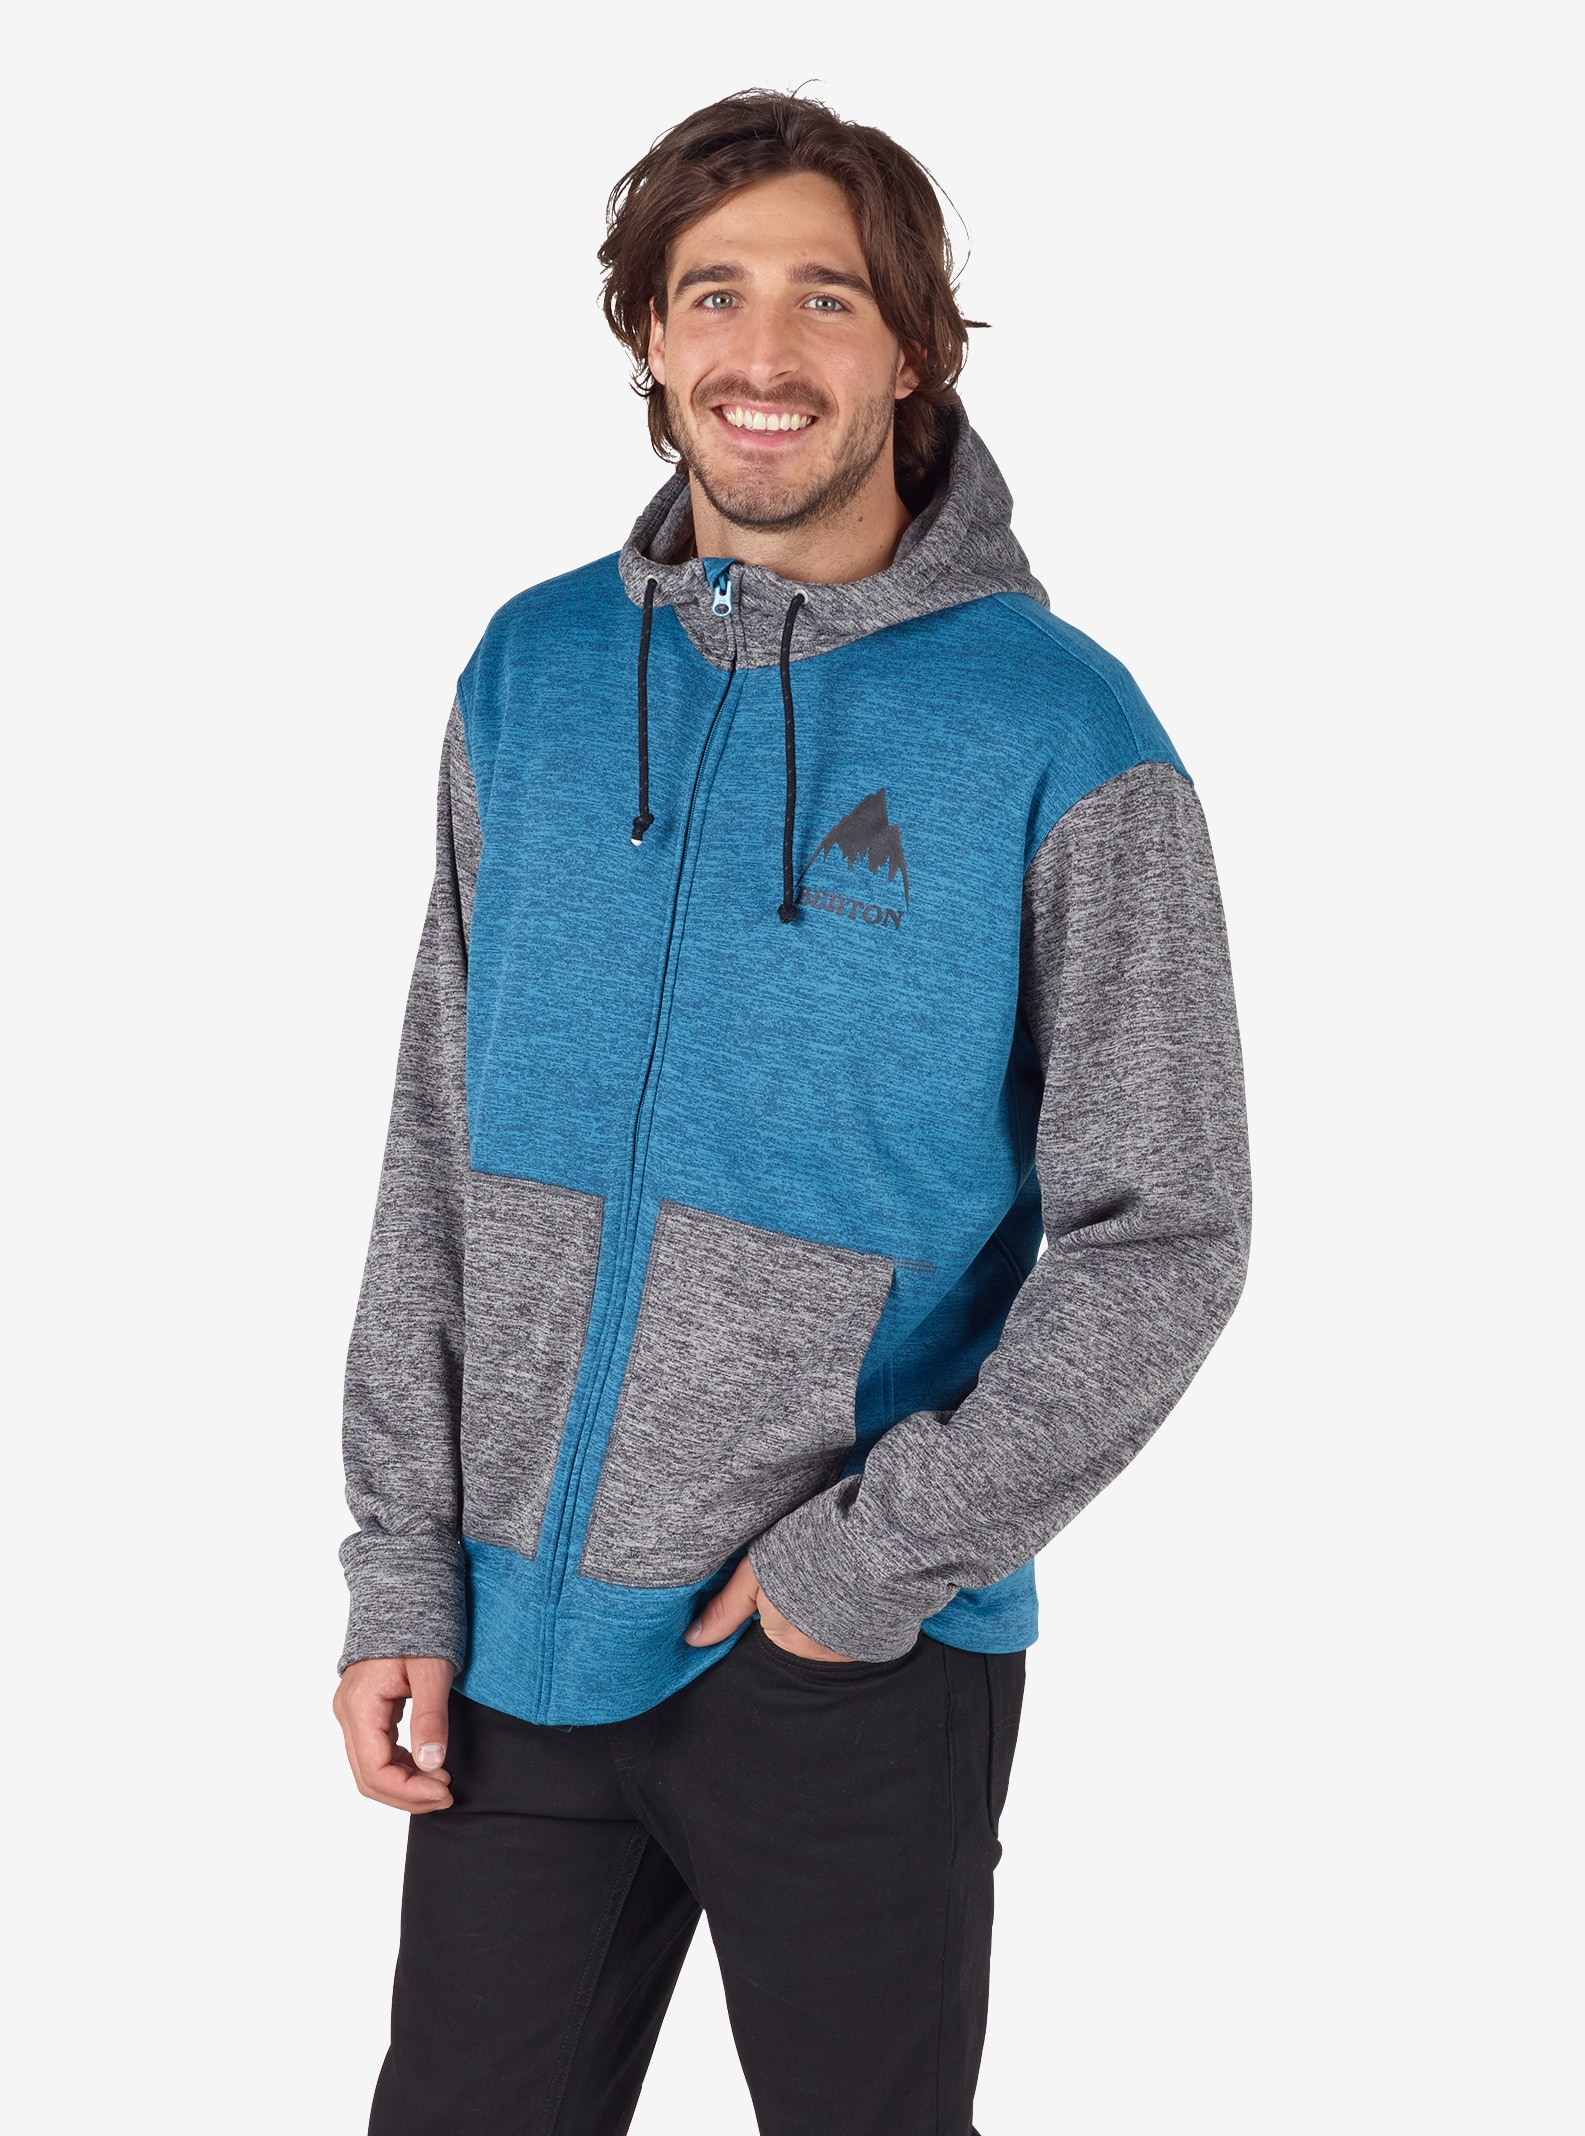 Men's Burton Oak Full-Zip Hoodie shown in Mountaineer Heather / True Black Heather